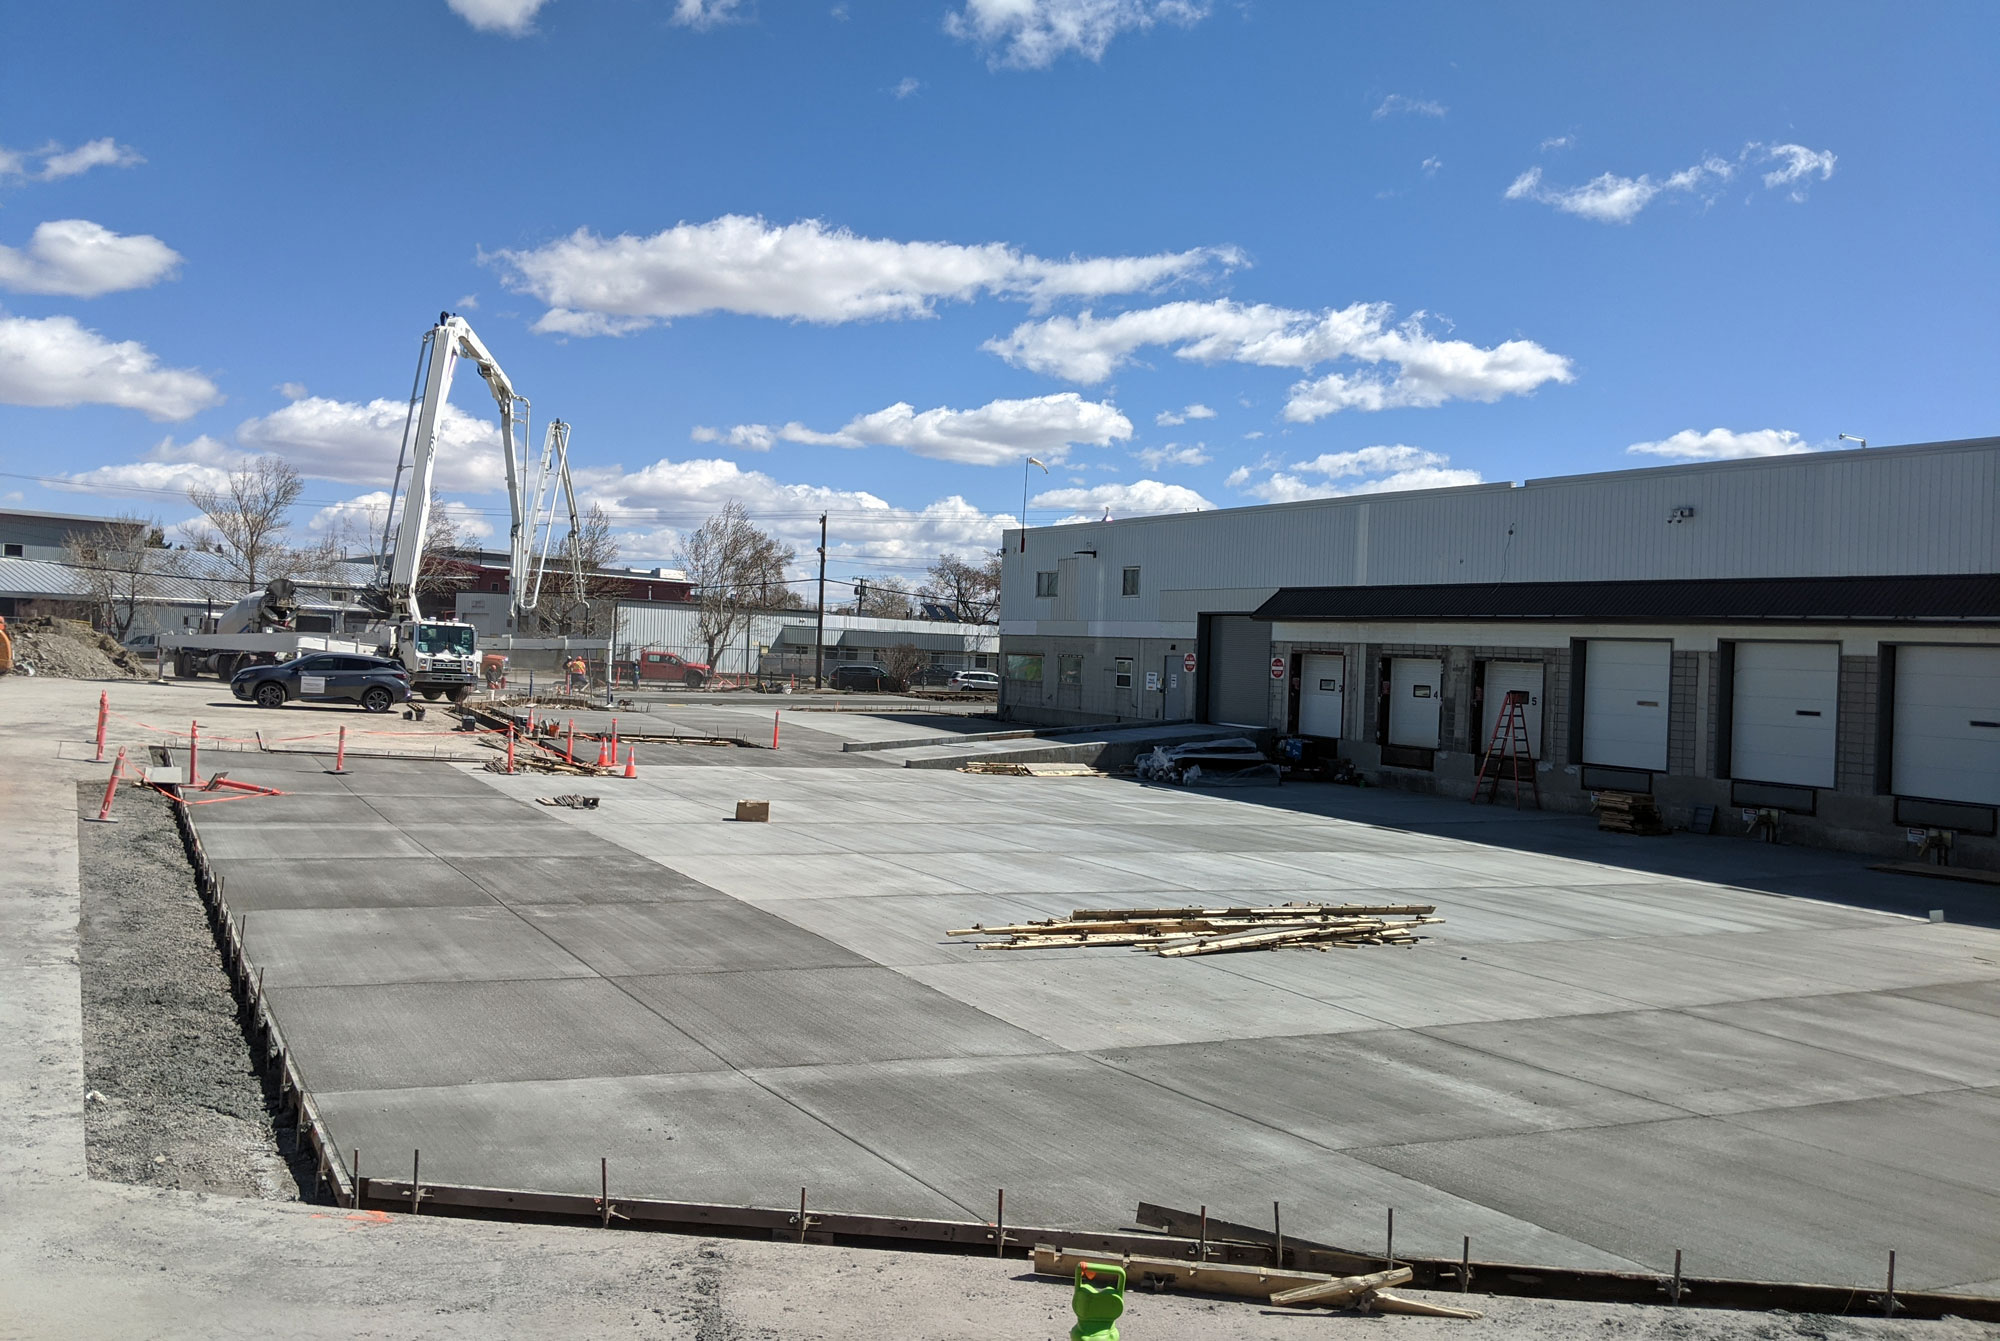 Construction Inspection for Concrete Pavement for Loading Dock